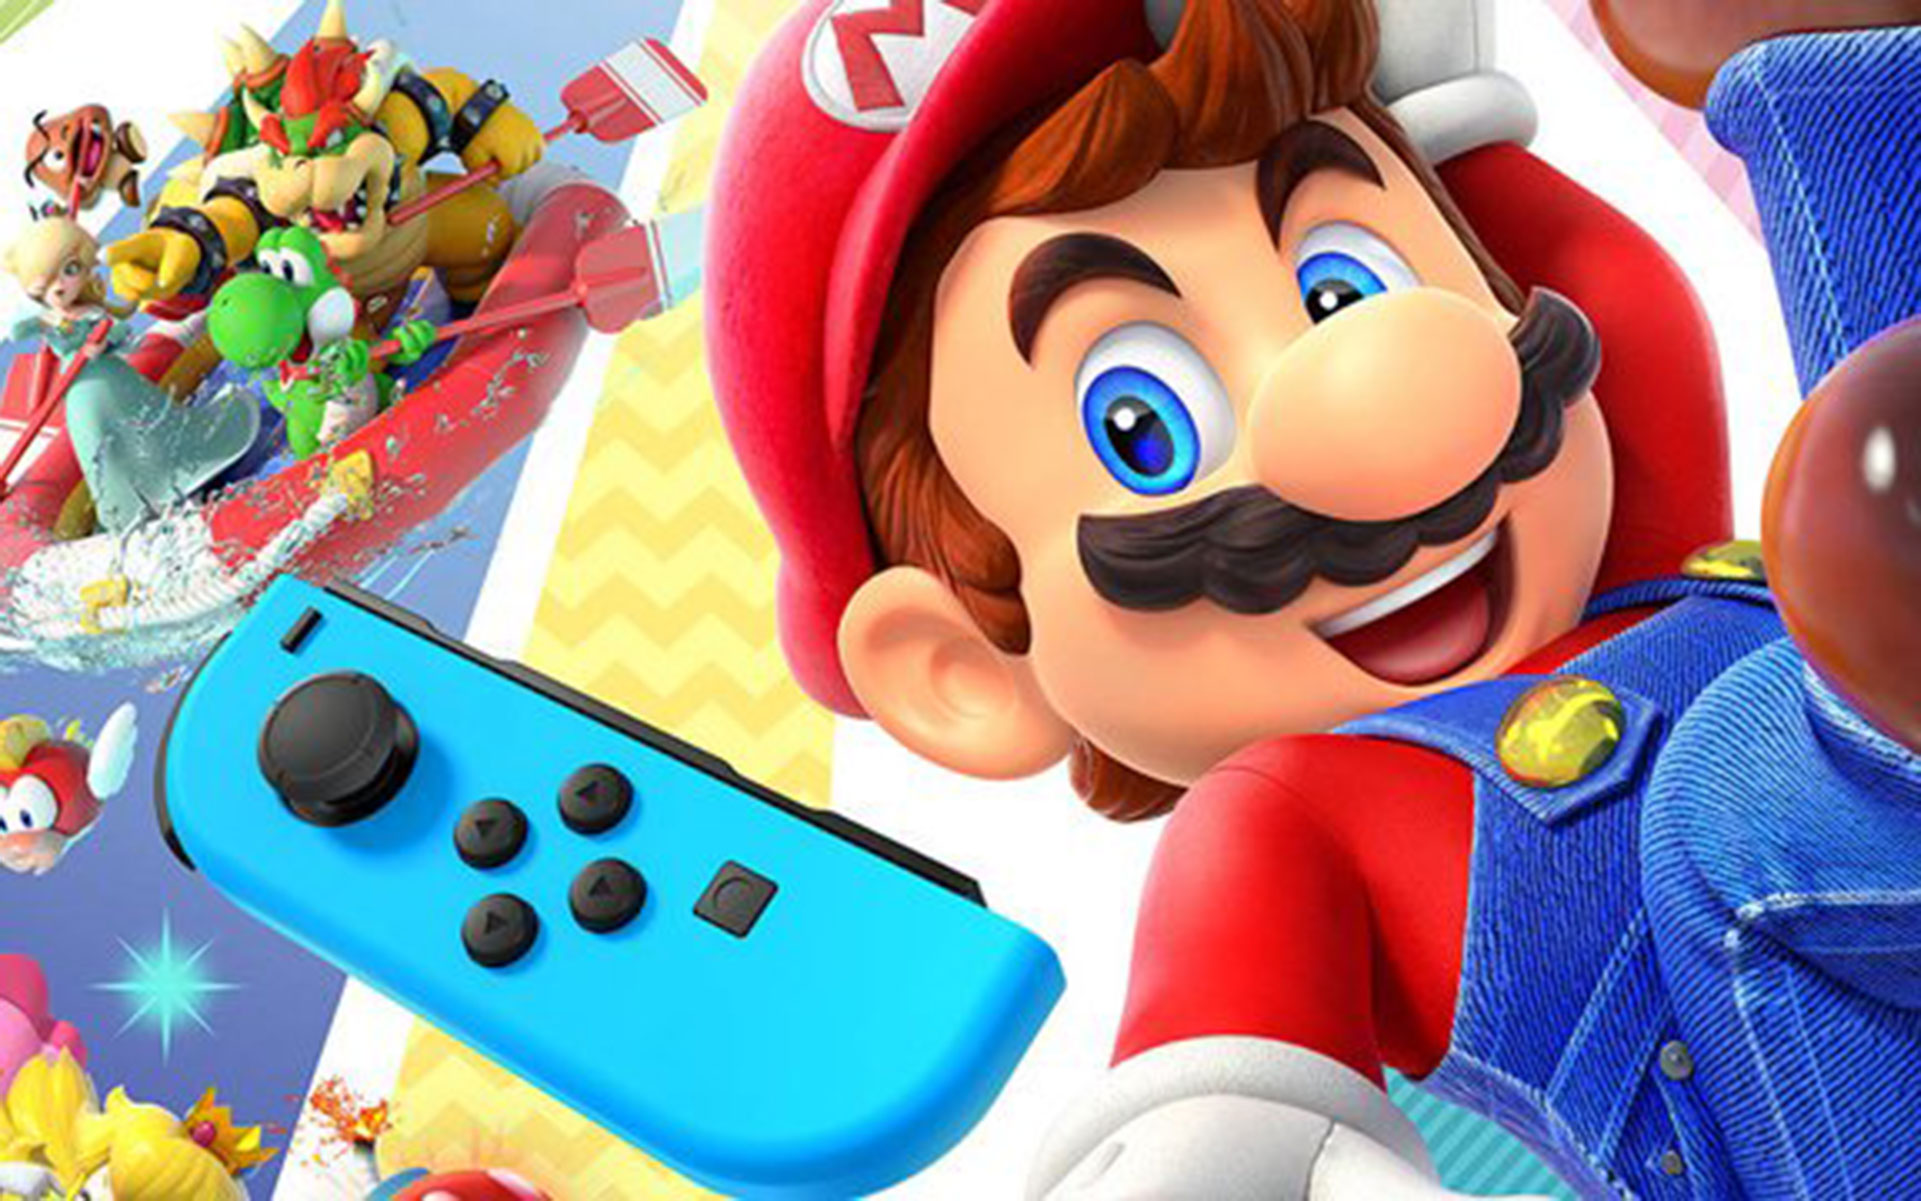 Nintendo's Super Mario Party stands among the best in pop culture this week.